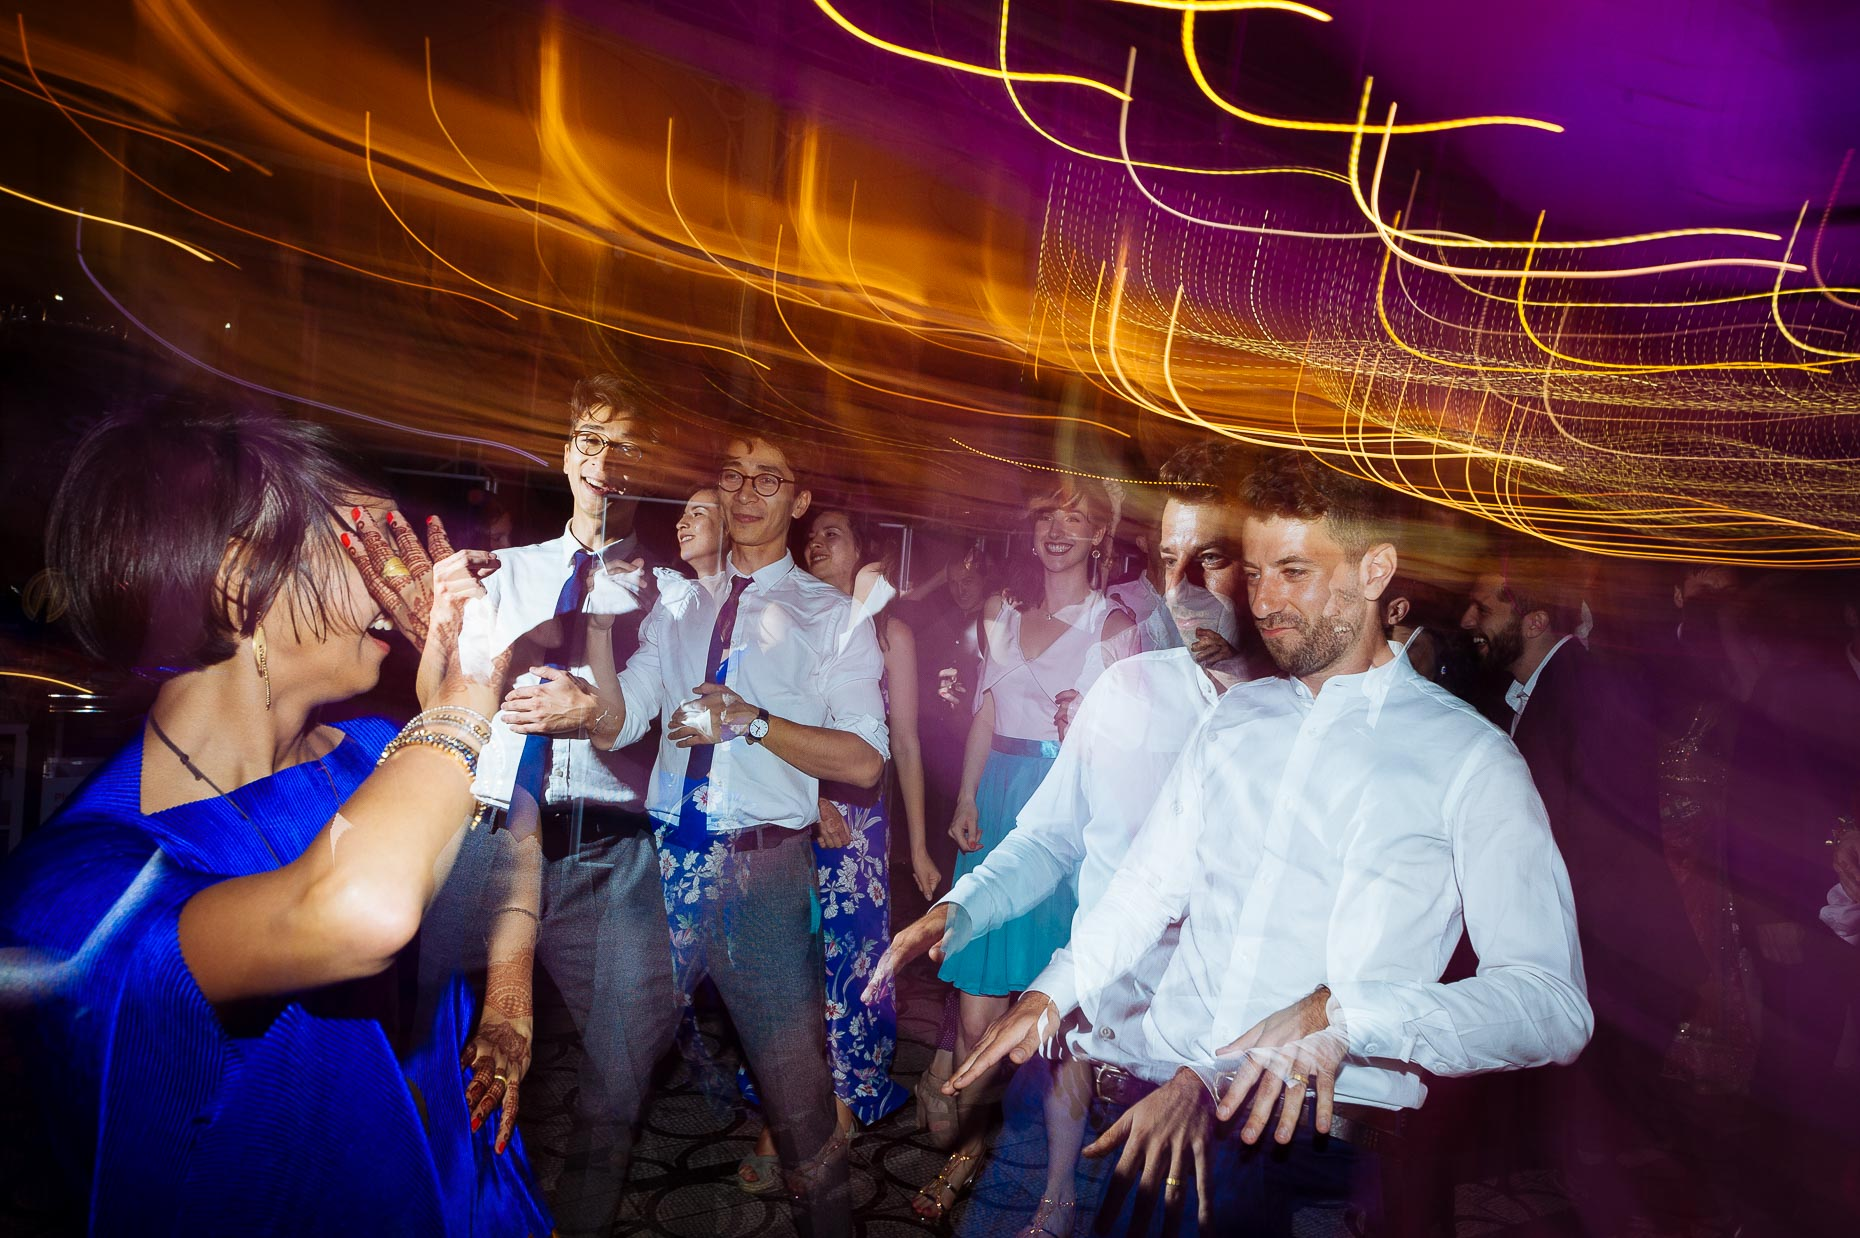 pooja-dan-v-and-a-museum-dancefloor-fusion-wedding-photography-32